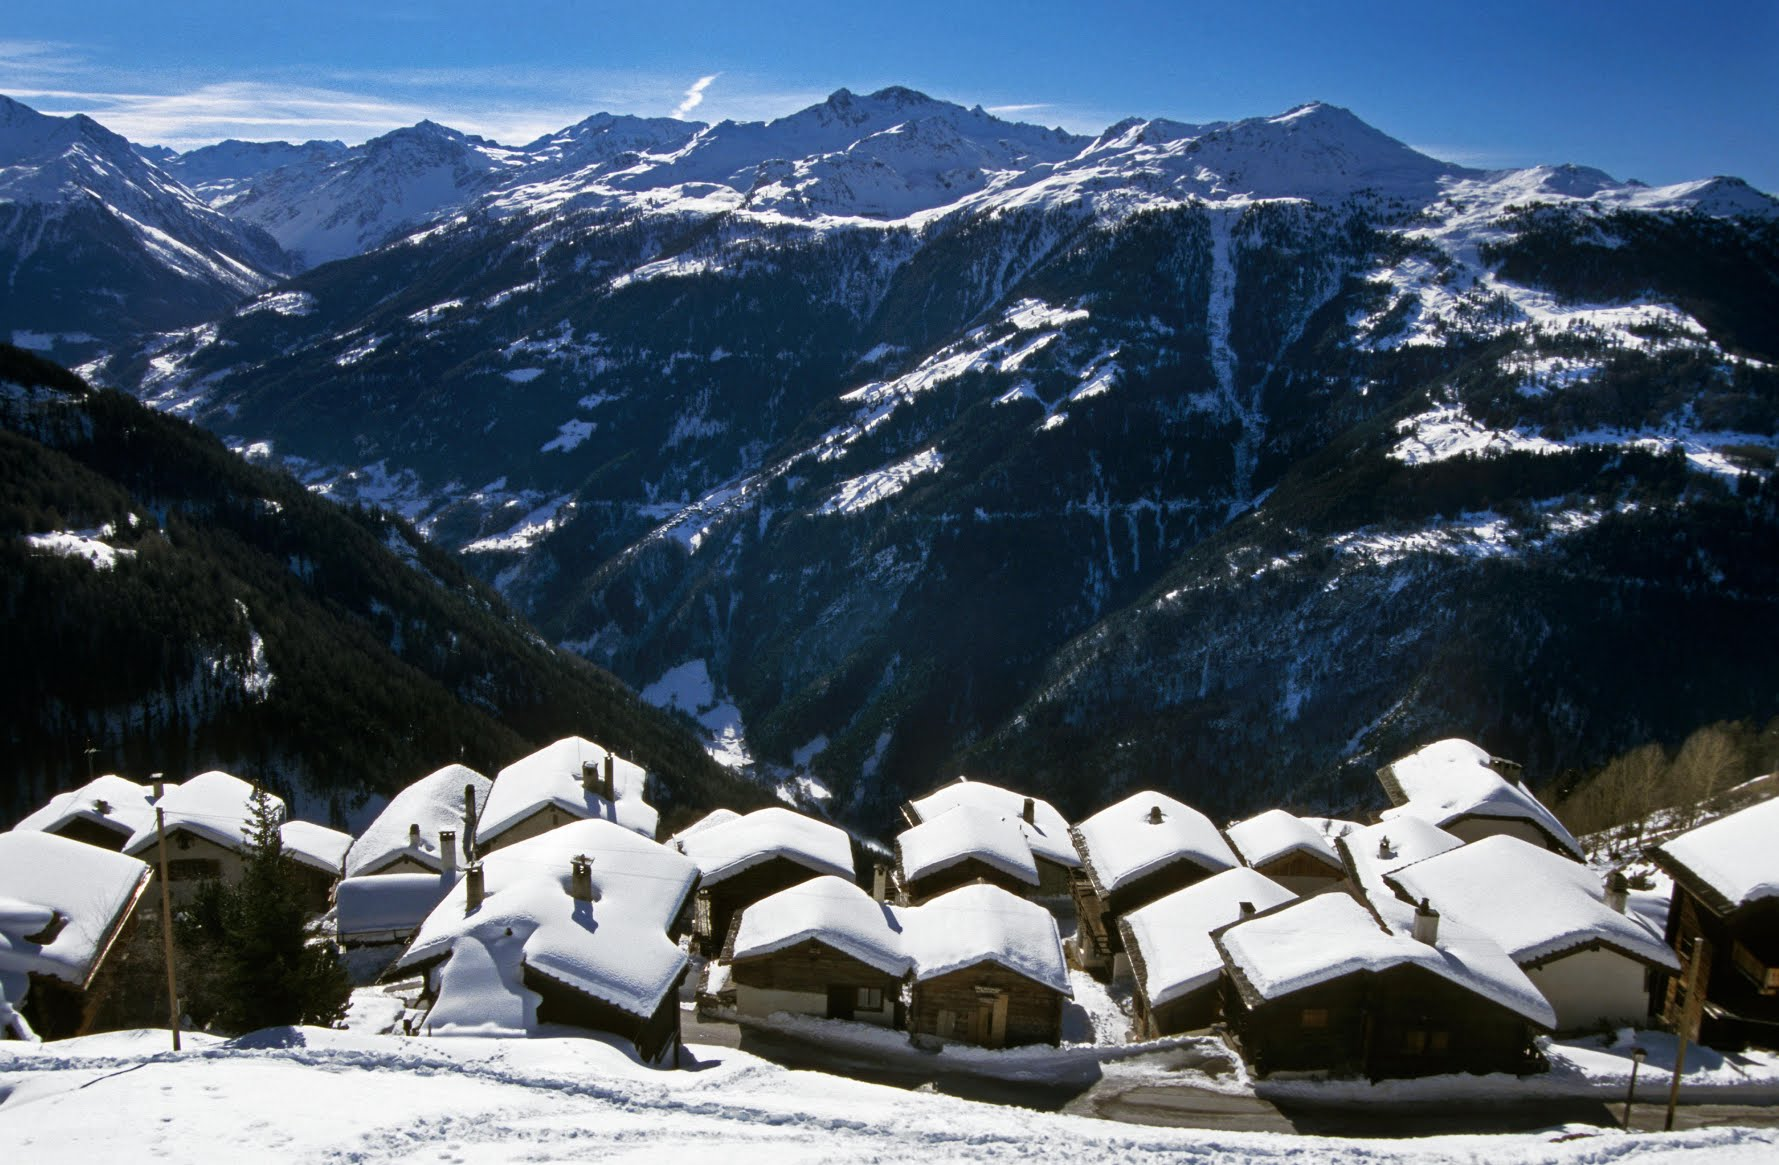 Snow covered house roofs of the mountain village Vieux Chandolin, Switzerland